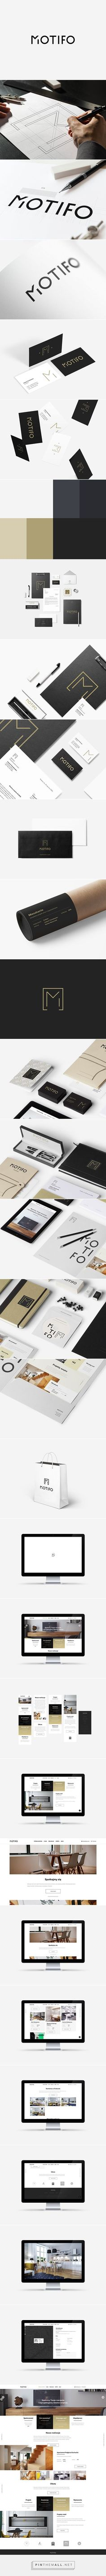 MOTIFO - Interior Design Architect | Branding & Website on Behance - created via http://pinthemall.net /